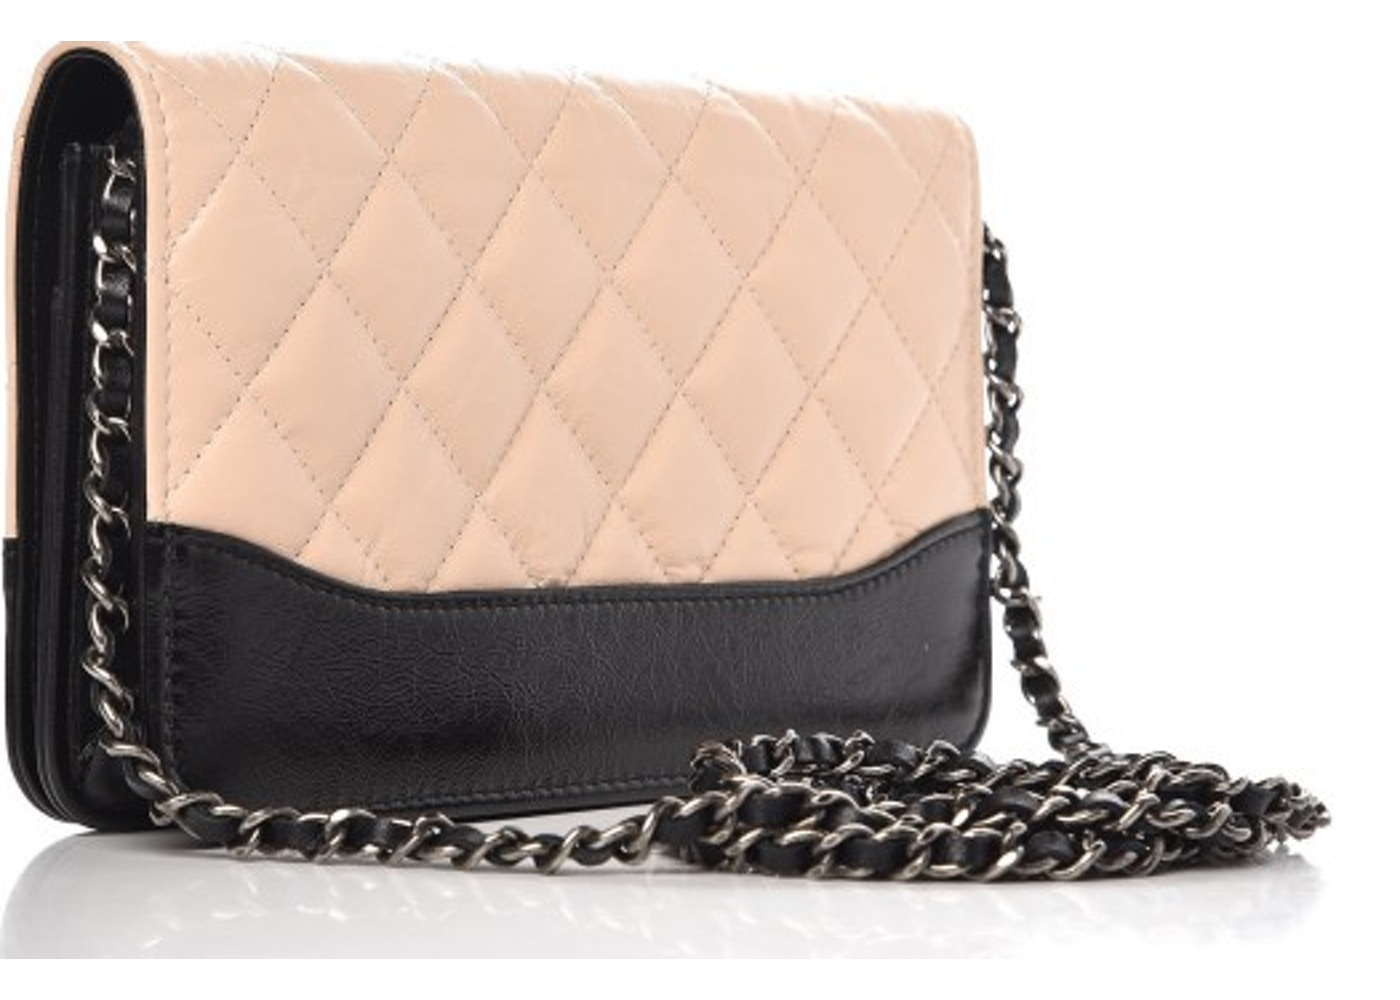 681ff2881d90 Chanel Gabrielle Wallet On Chain Quilted Aged Calfskin Silver/Gold-tone  Beige/Black